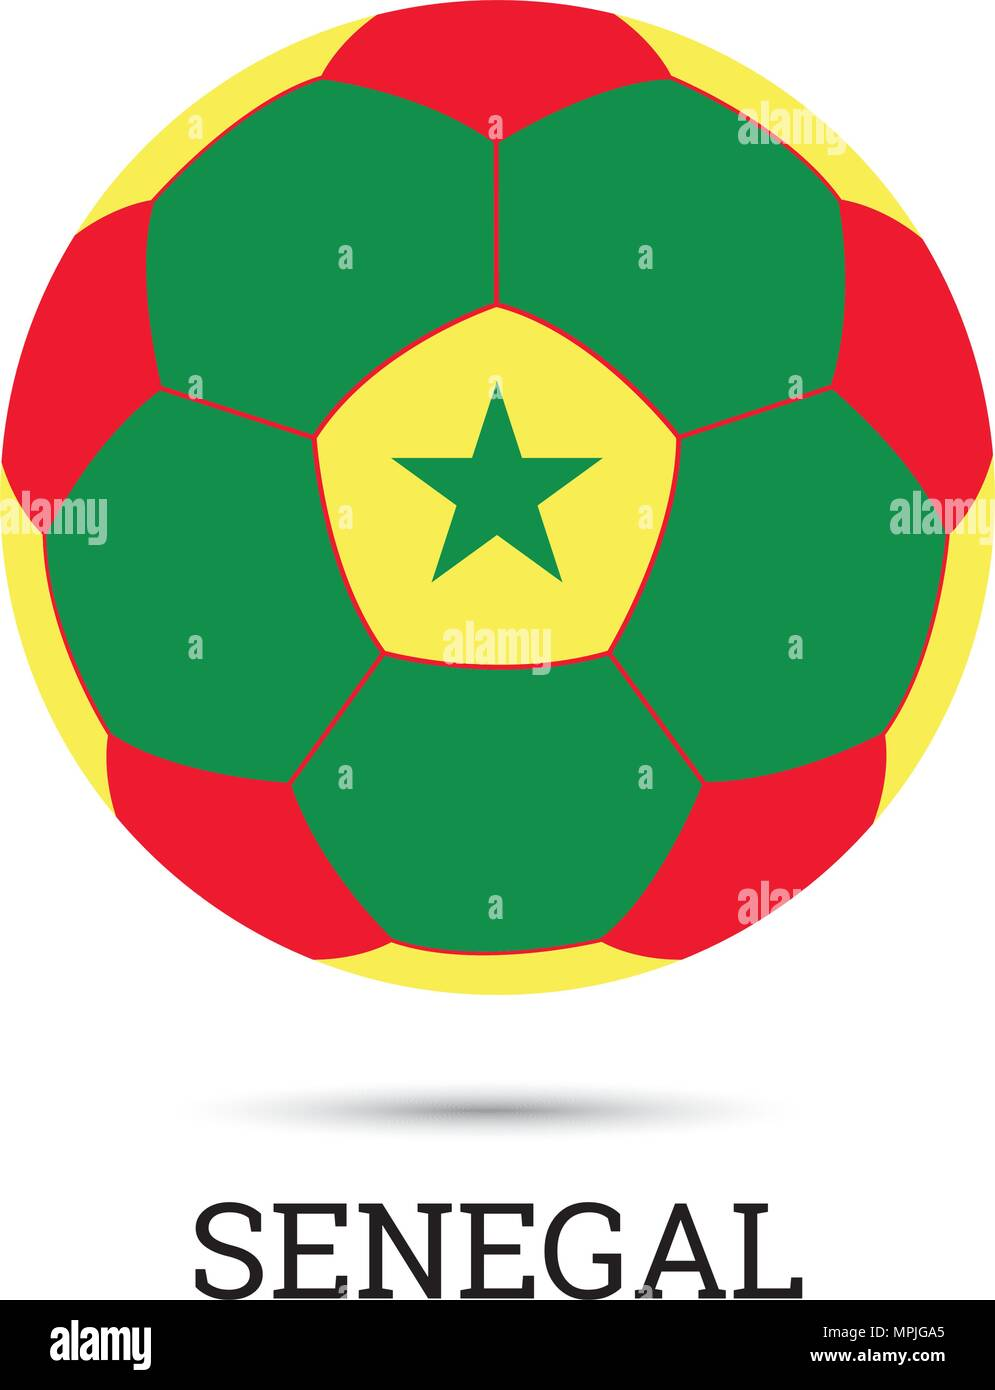 ff18129a9c1 Soccer ball with Senegalese national colors vector illustration - Stock  Image